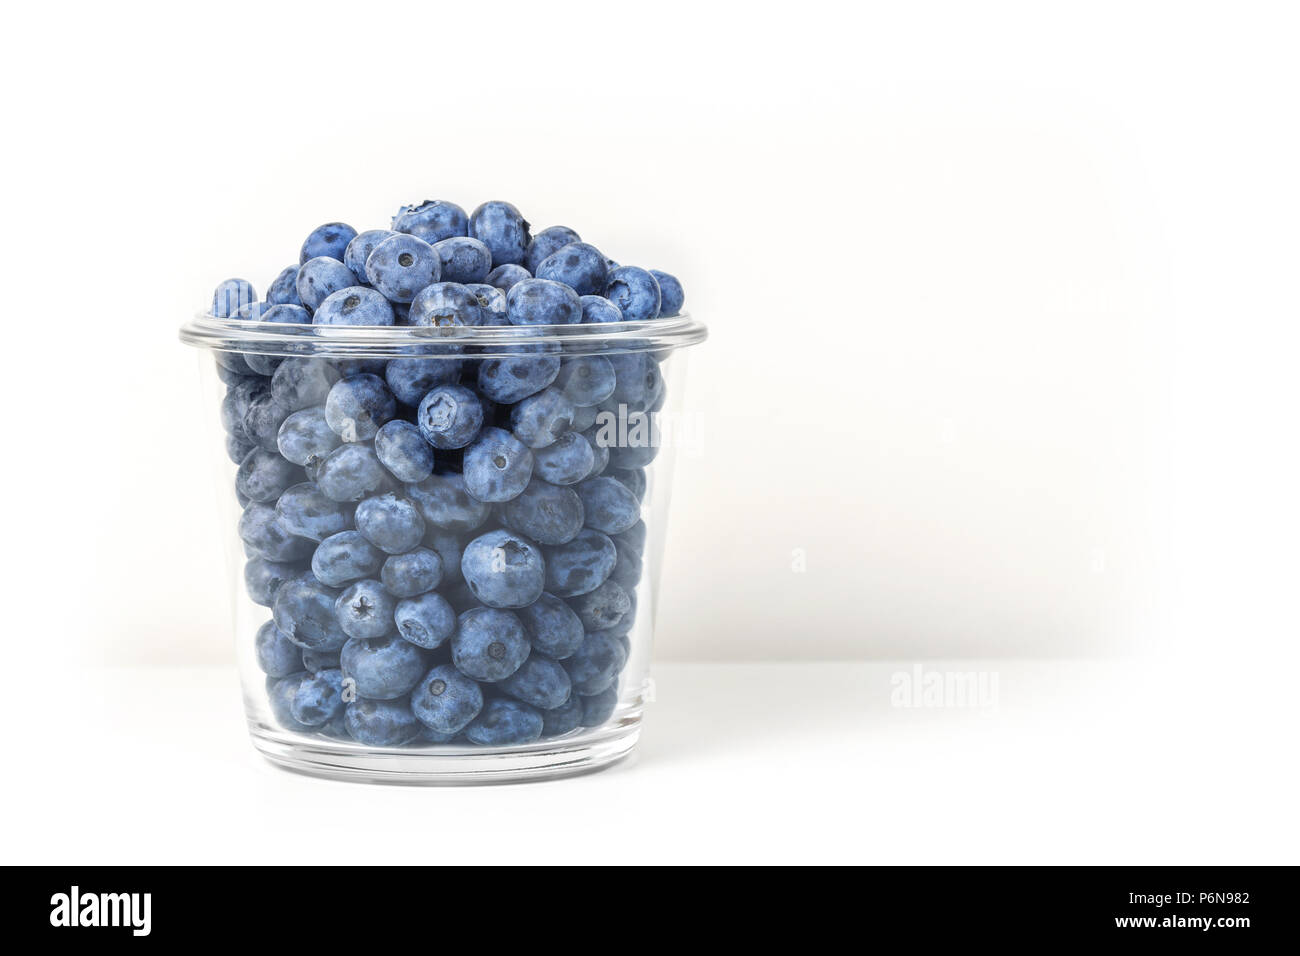 Fresh organic blueberries in transparent glass bowl isolated on white background. Sweet tasty bilberries in pot. Summer seasonal natural vitamines and antioxidants. Healthy diet and nutrition concept Stock Photo